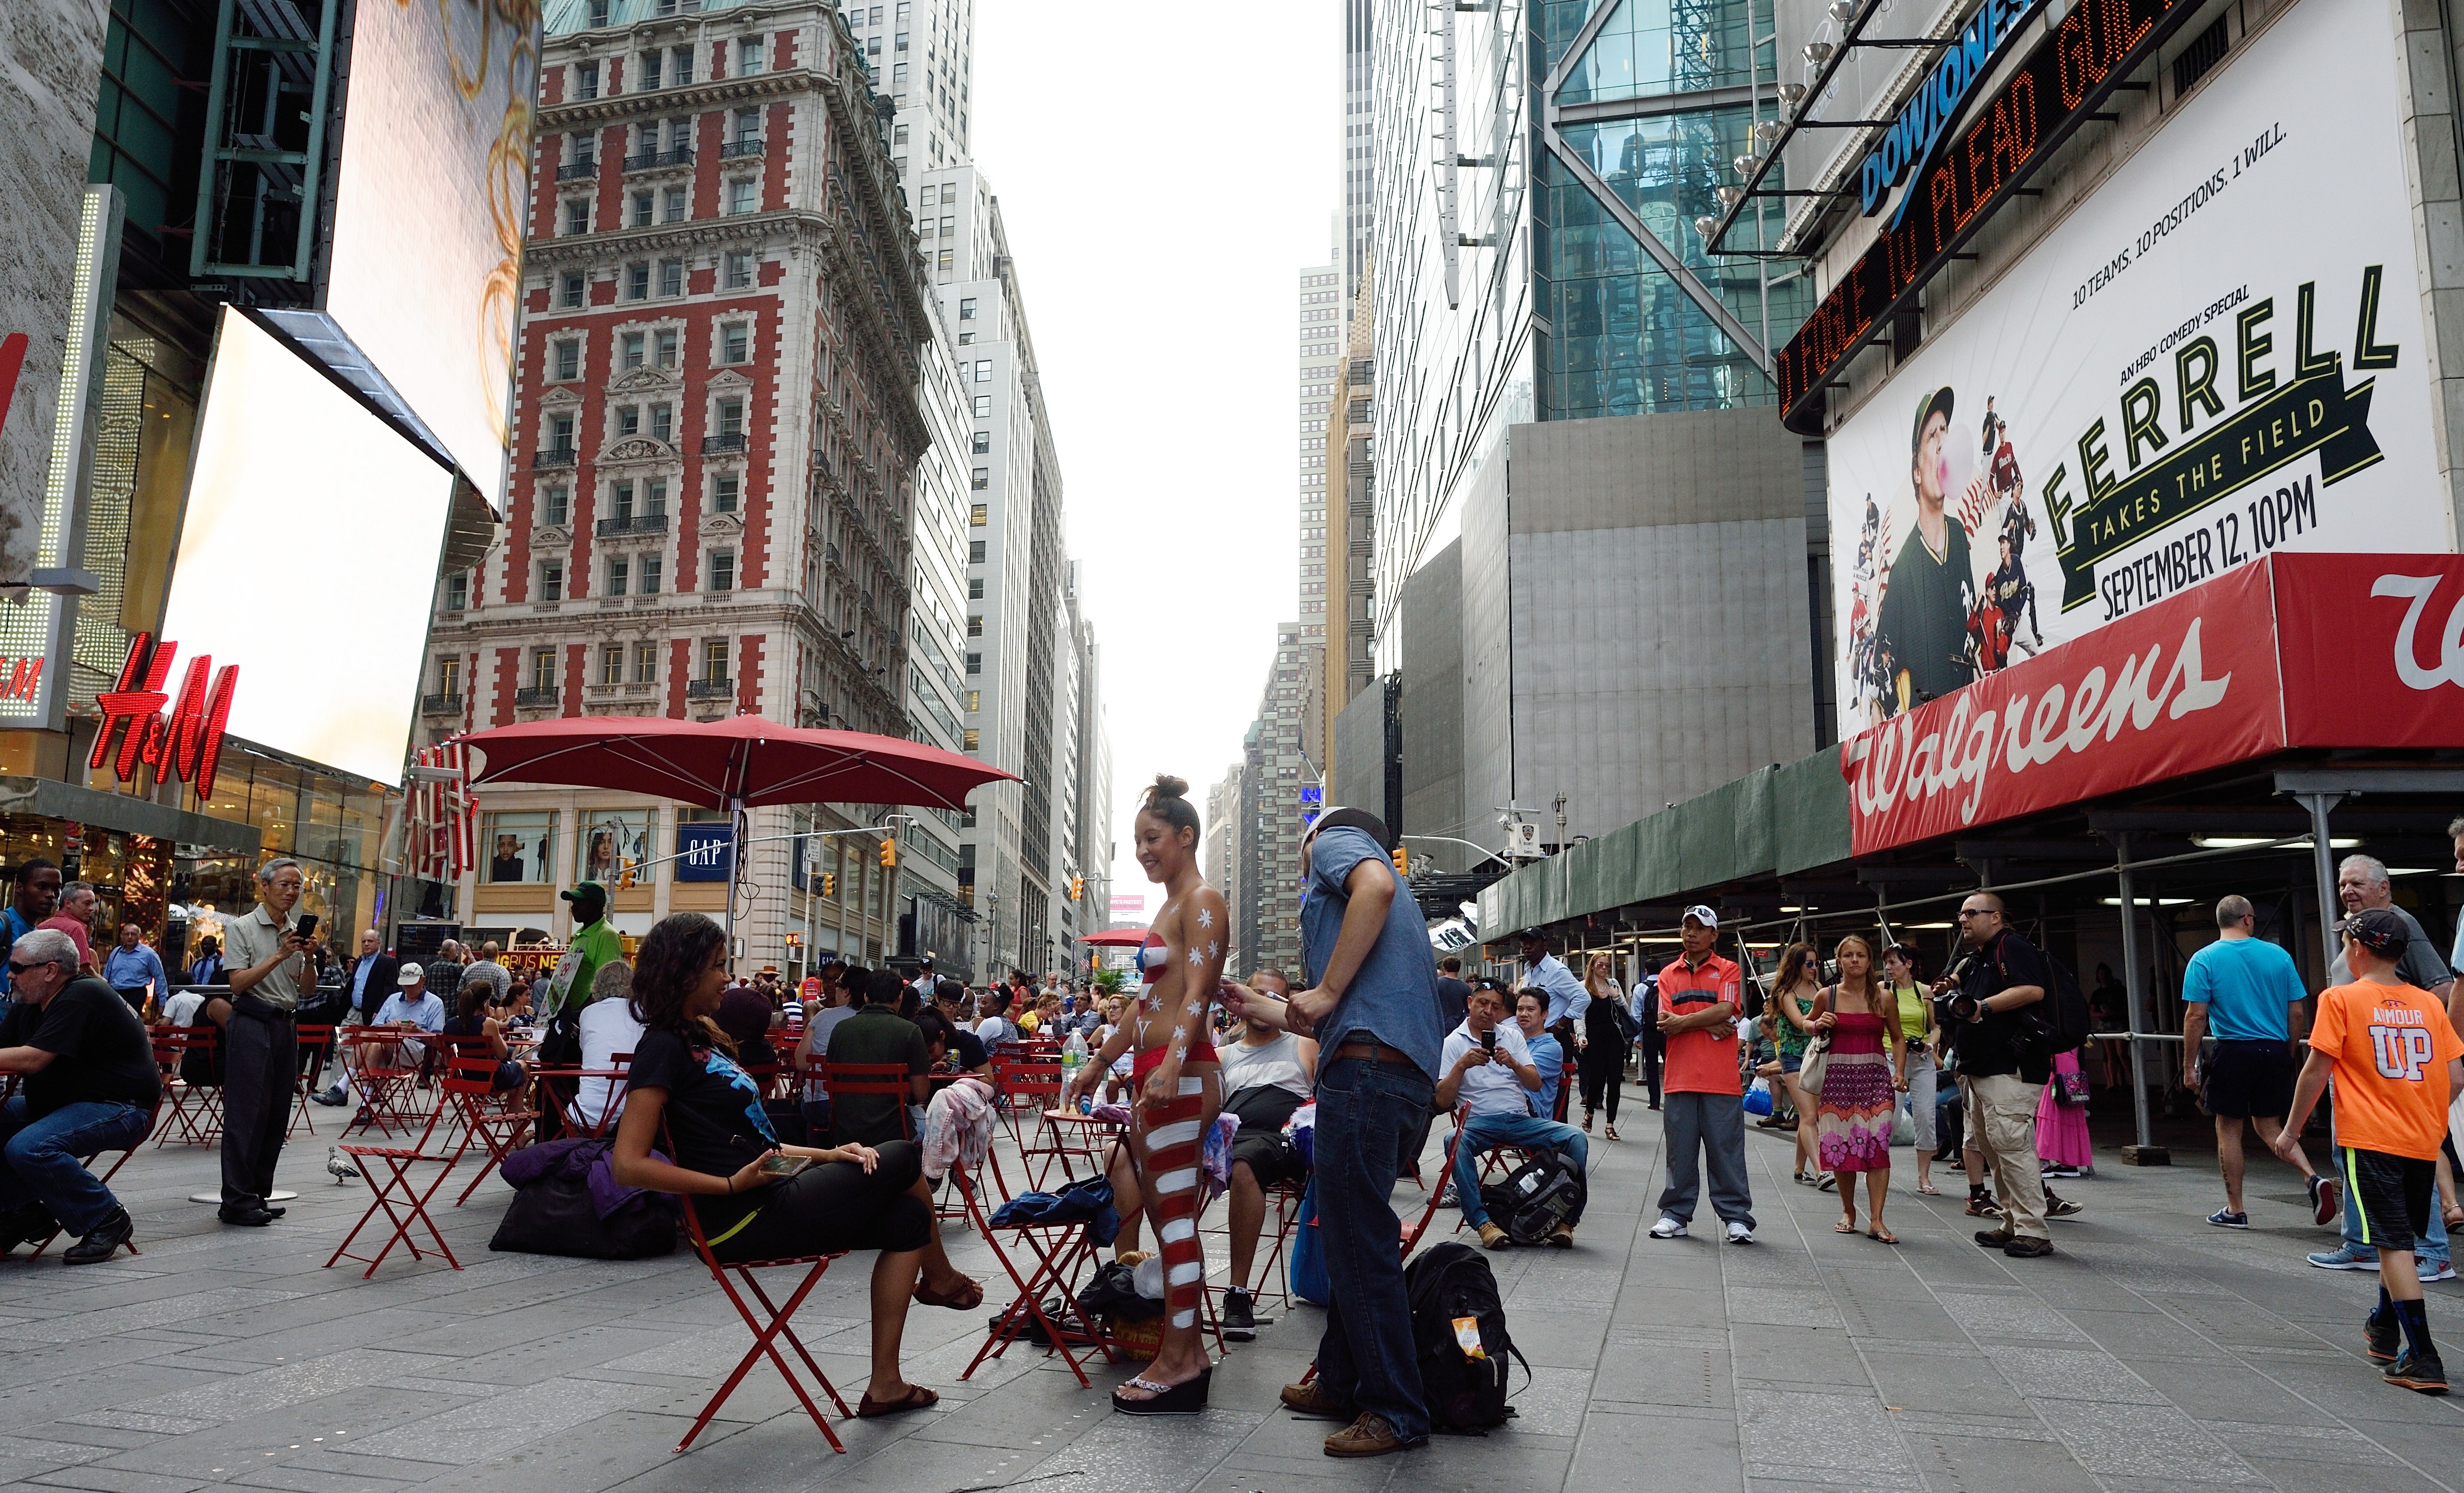 A young woman has her body painted in a Times Square pedestrian plaza. (Photo: DON EMMERT/AFP/Getty Images)